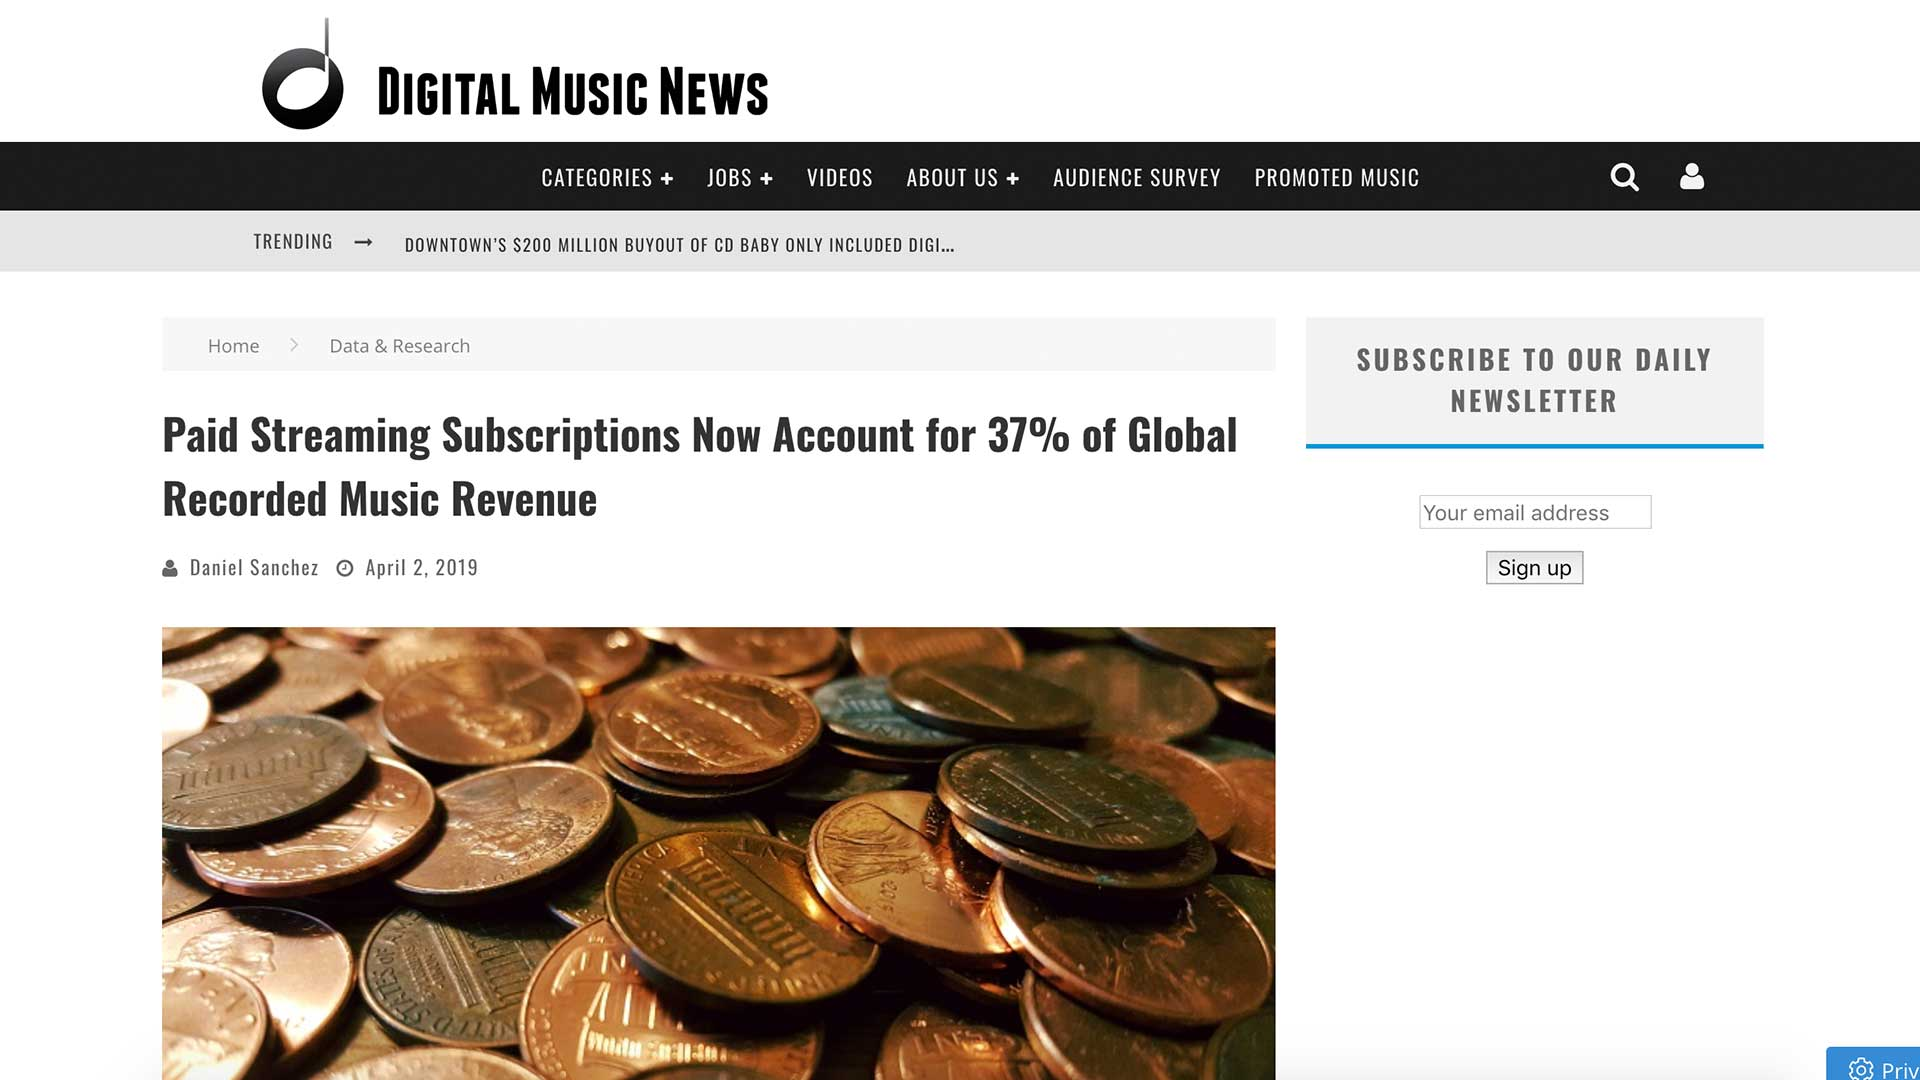 Fairness Rocks News Paid Streaming Subscriptions Now Account for 37% of Global Recorded Music Revenue